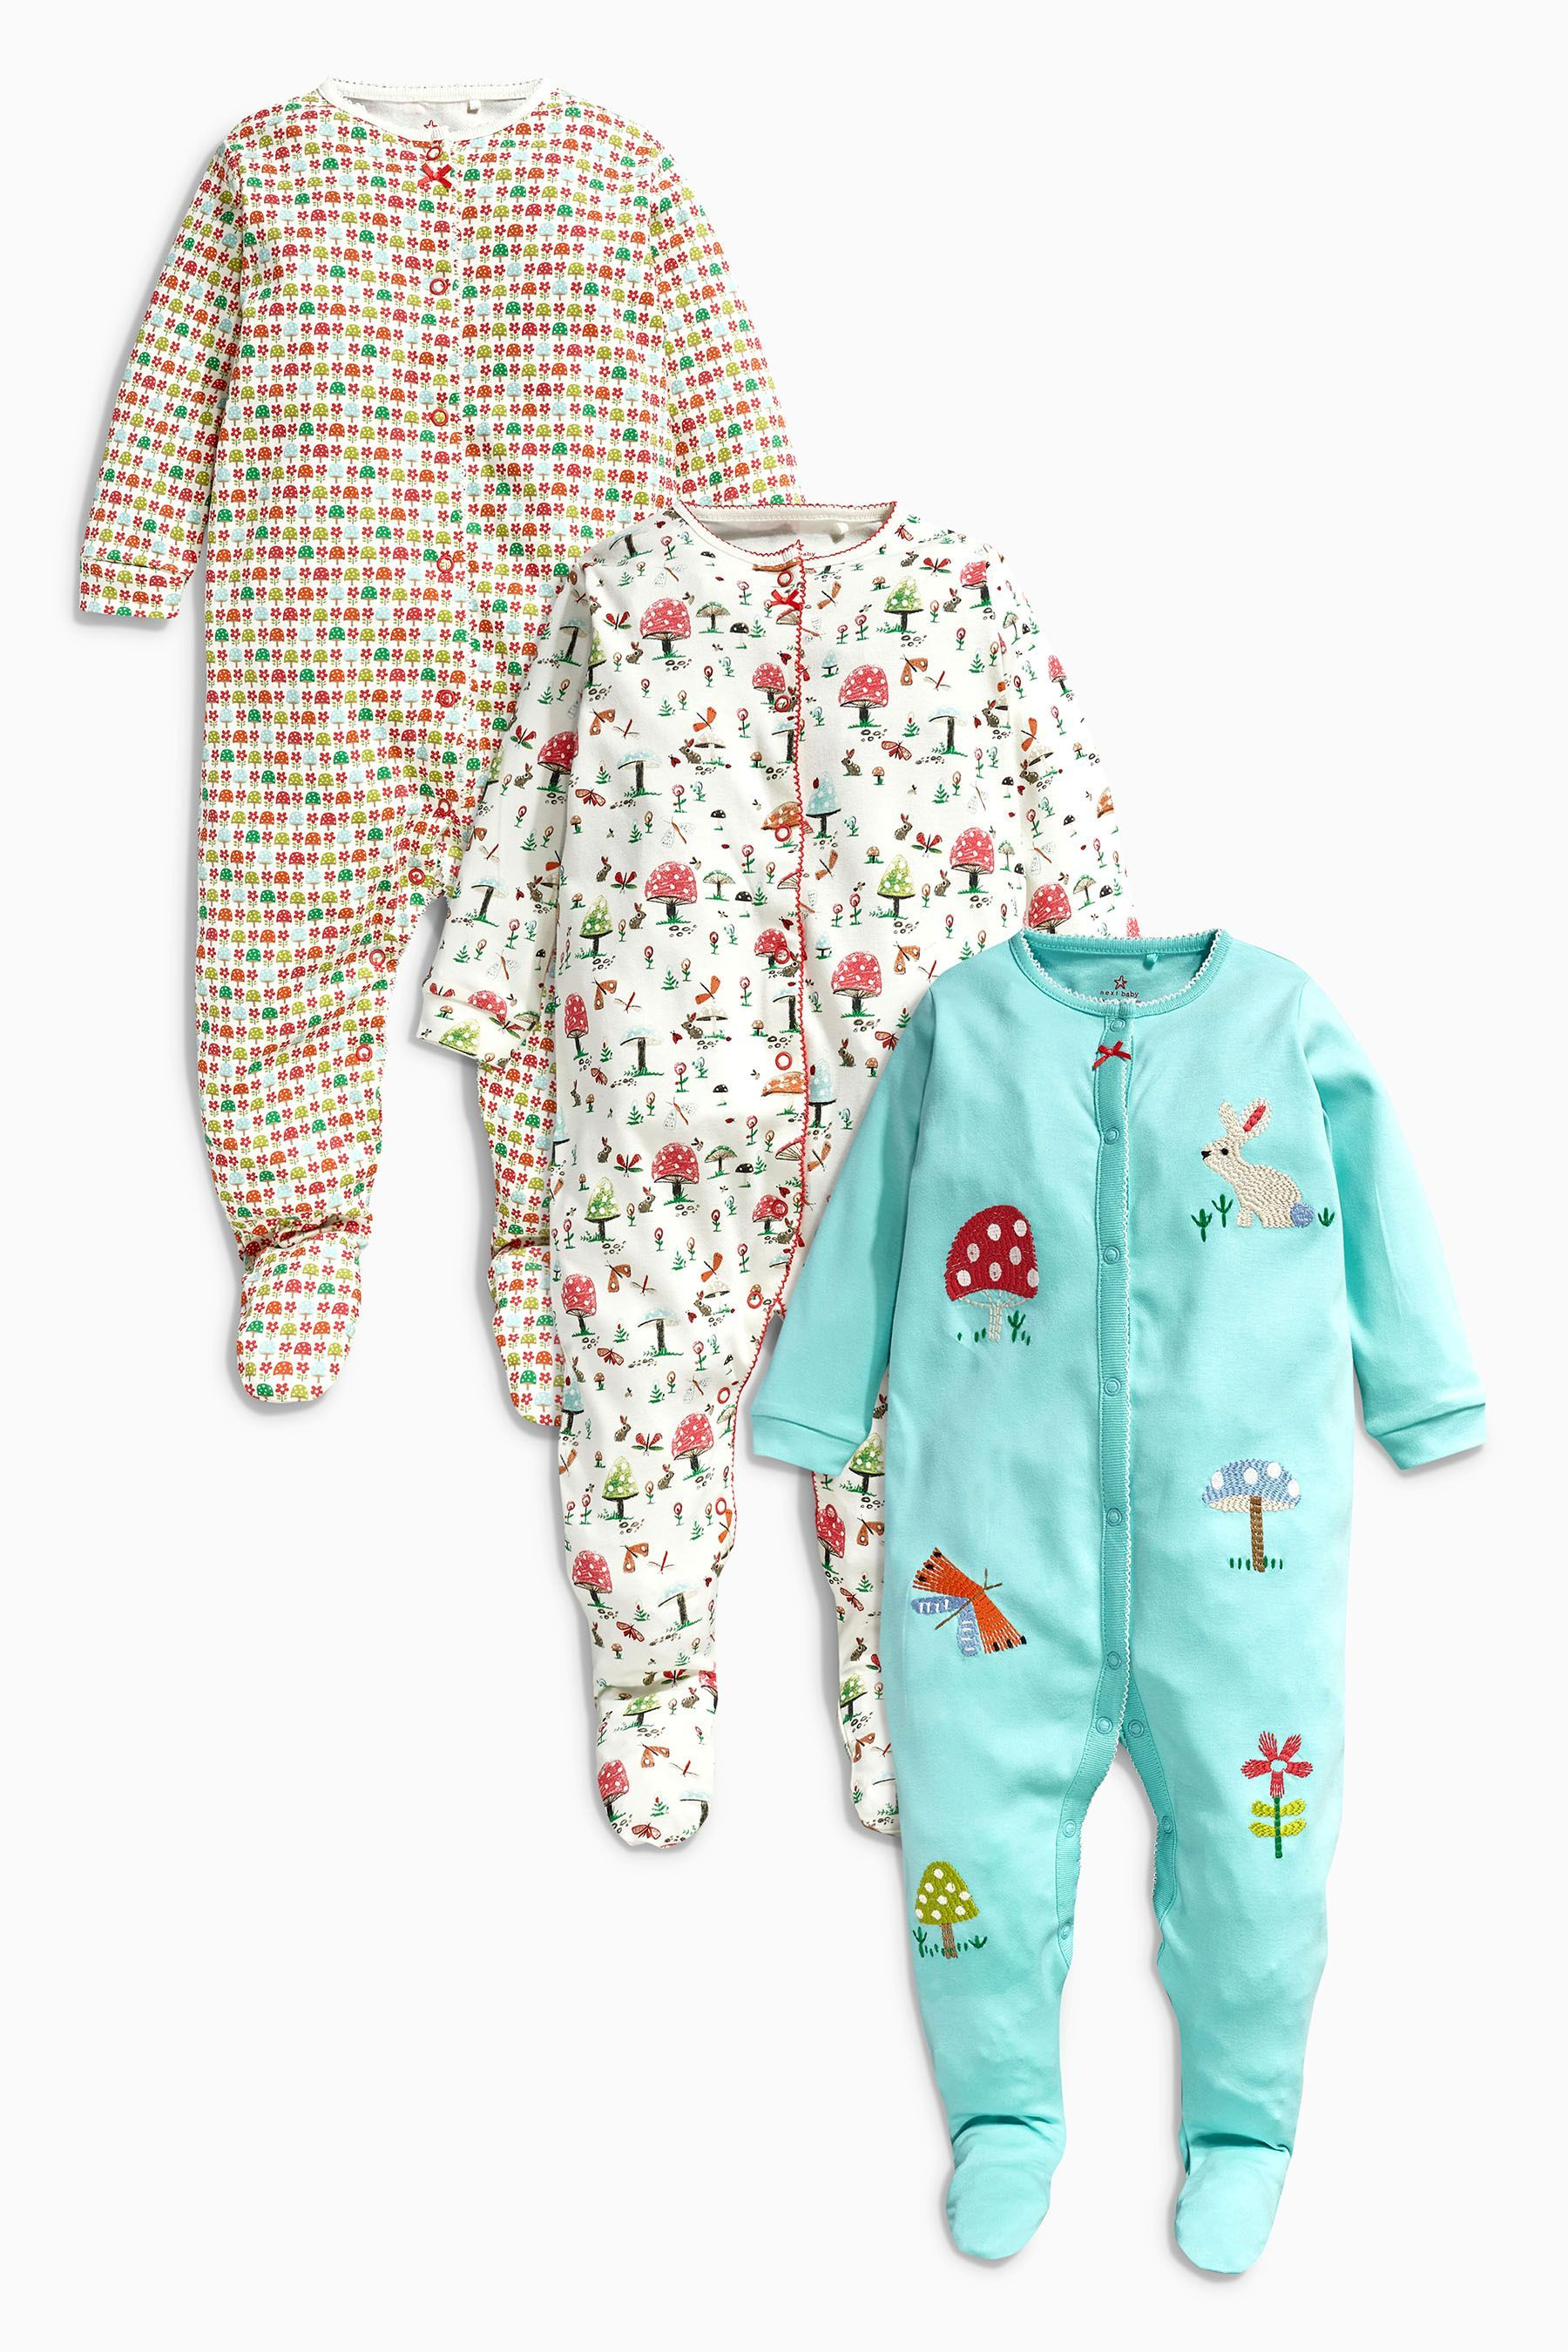 One-pieces Next Baby Boy Fleece Sleepsuits 3-6 Months